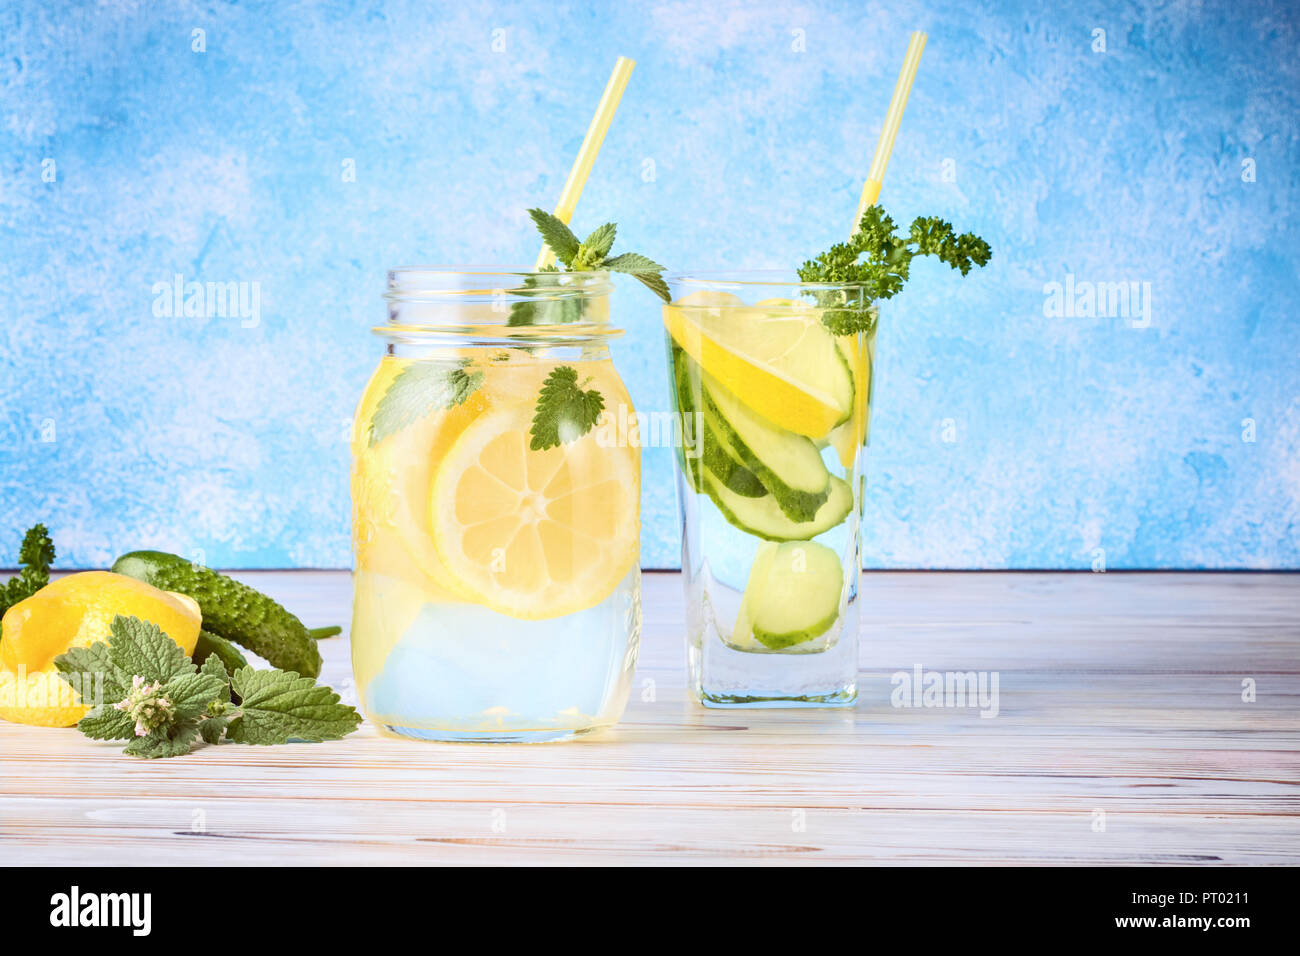 Set of two popular diet detox drinks for cleansing Antioxidant Cucumber Water and Lemonade with Mint Leaves Homemade Food Concept - Stock Image